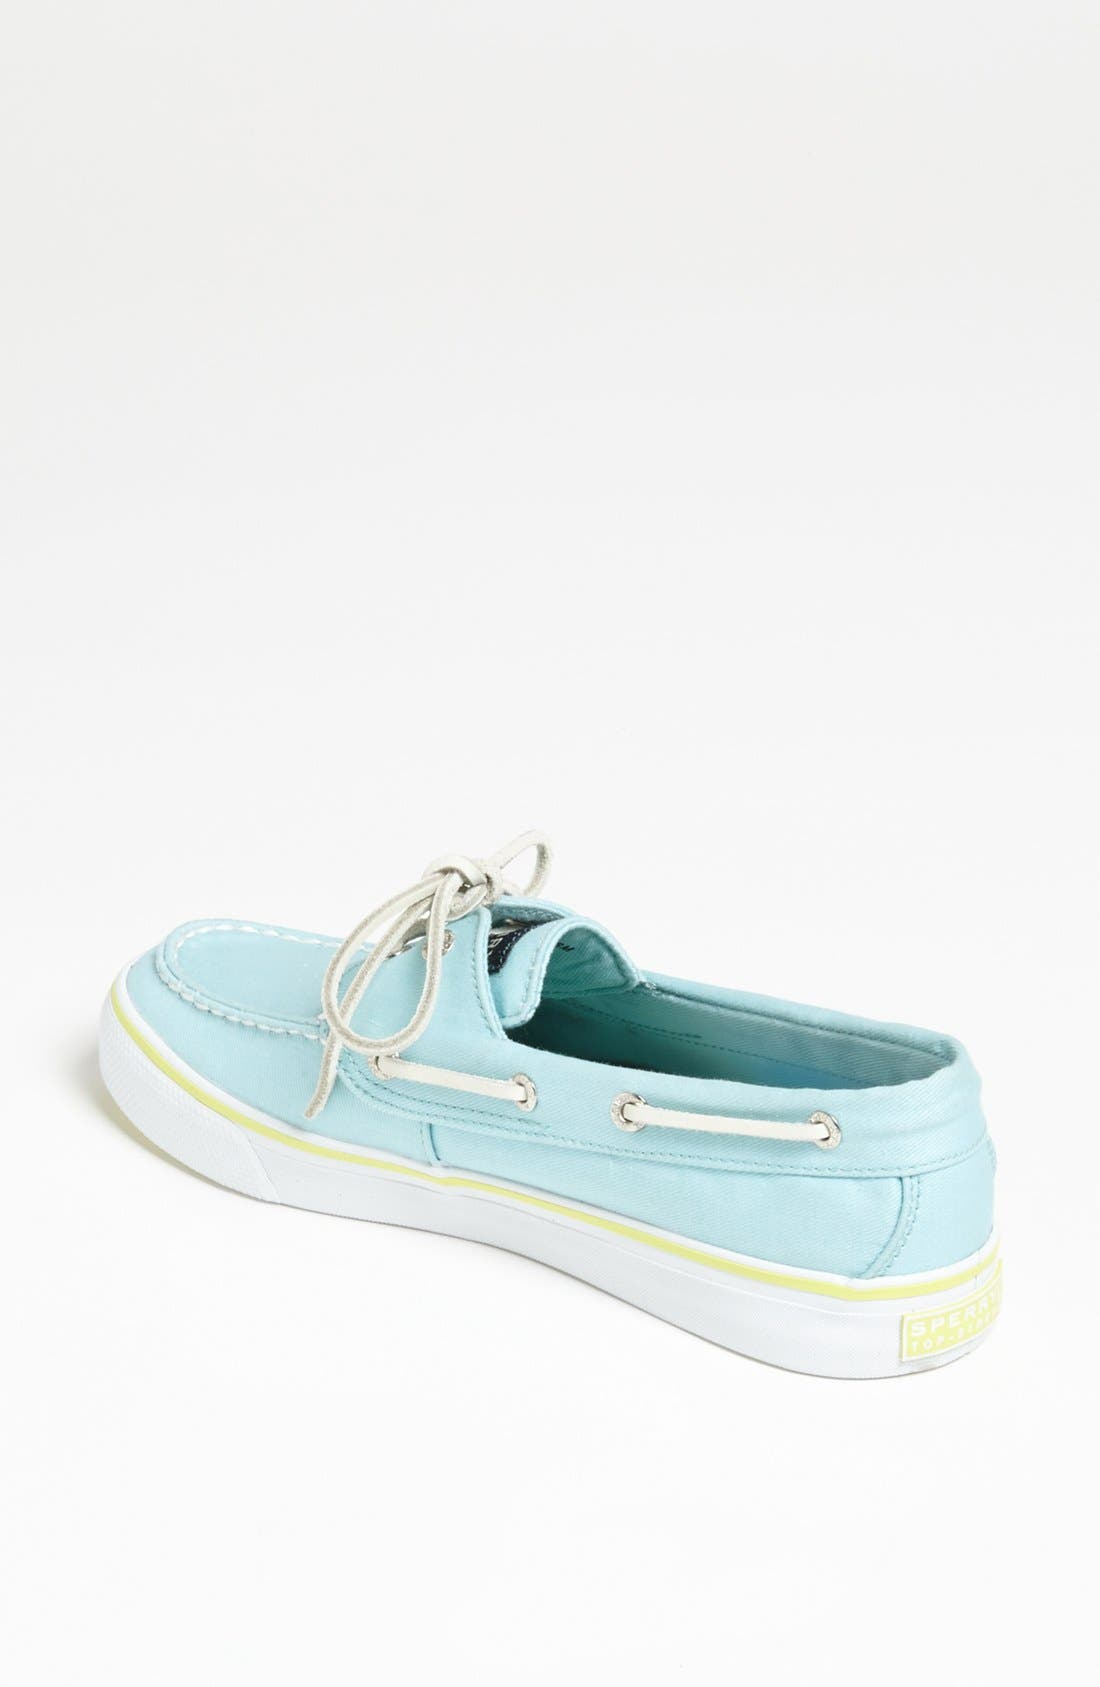 Top-Sider<sup>®</sup> 'Bahama' Sequined Boat Shoe,                             Alternate thumbnail 142, color,